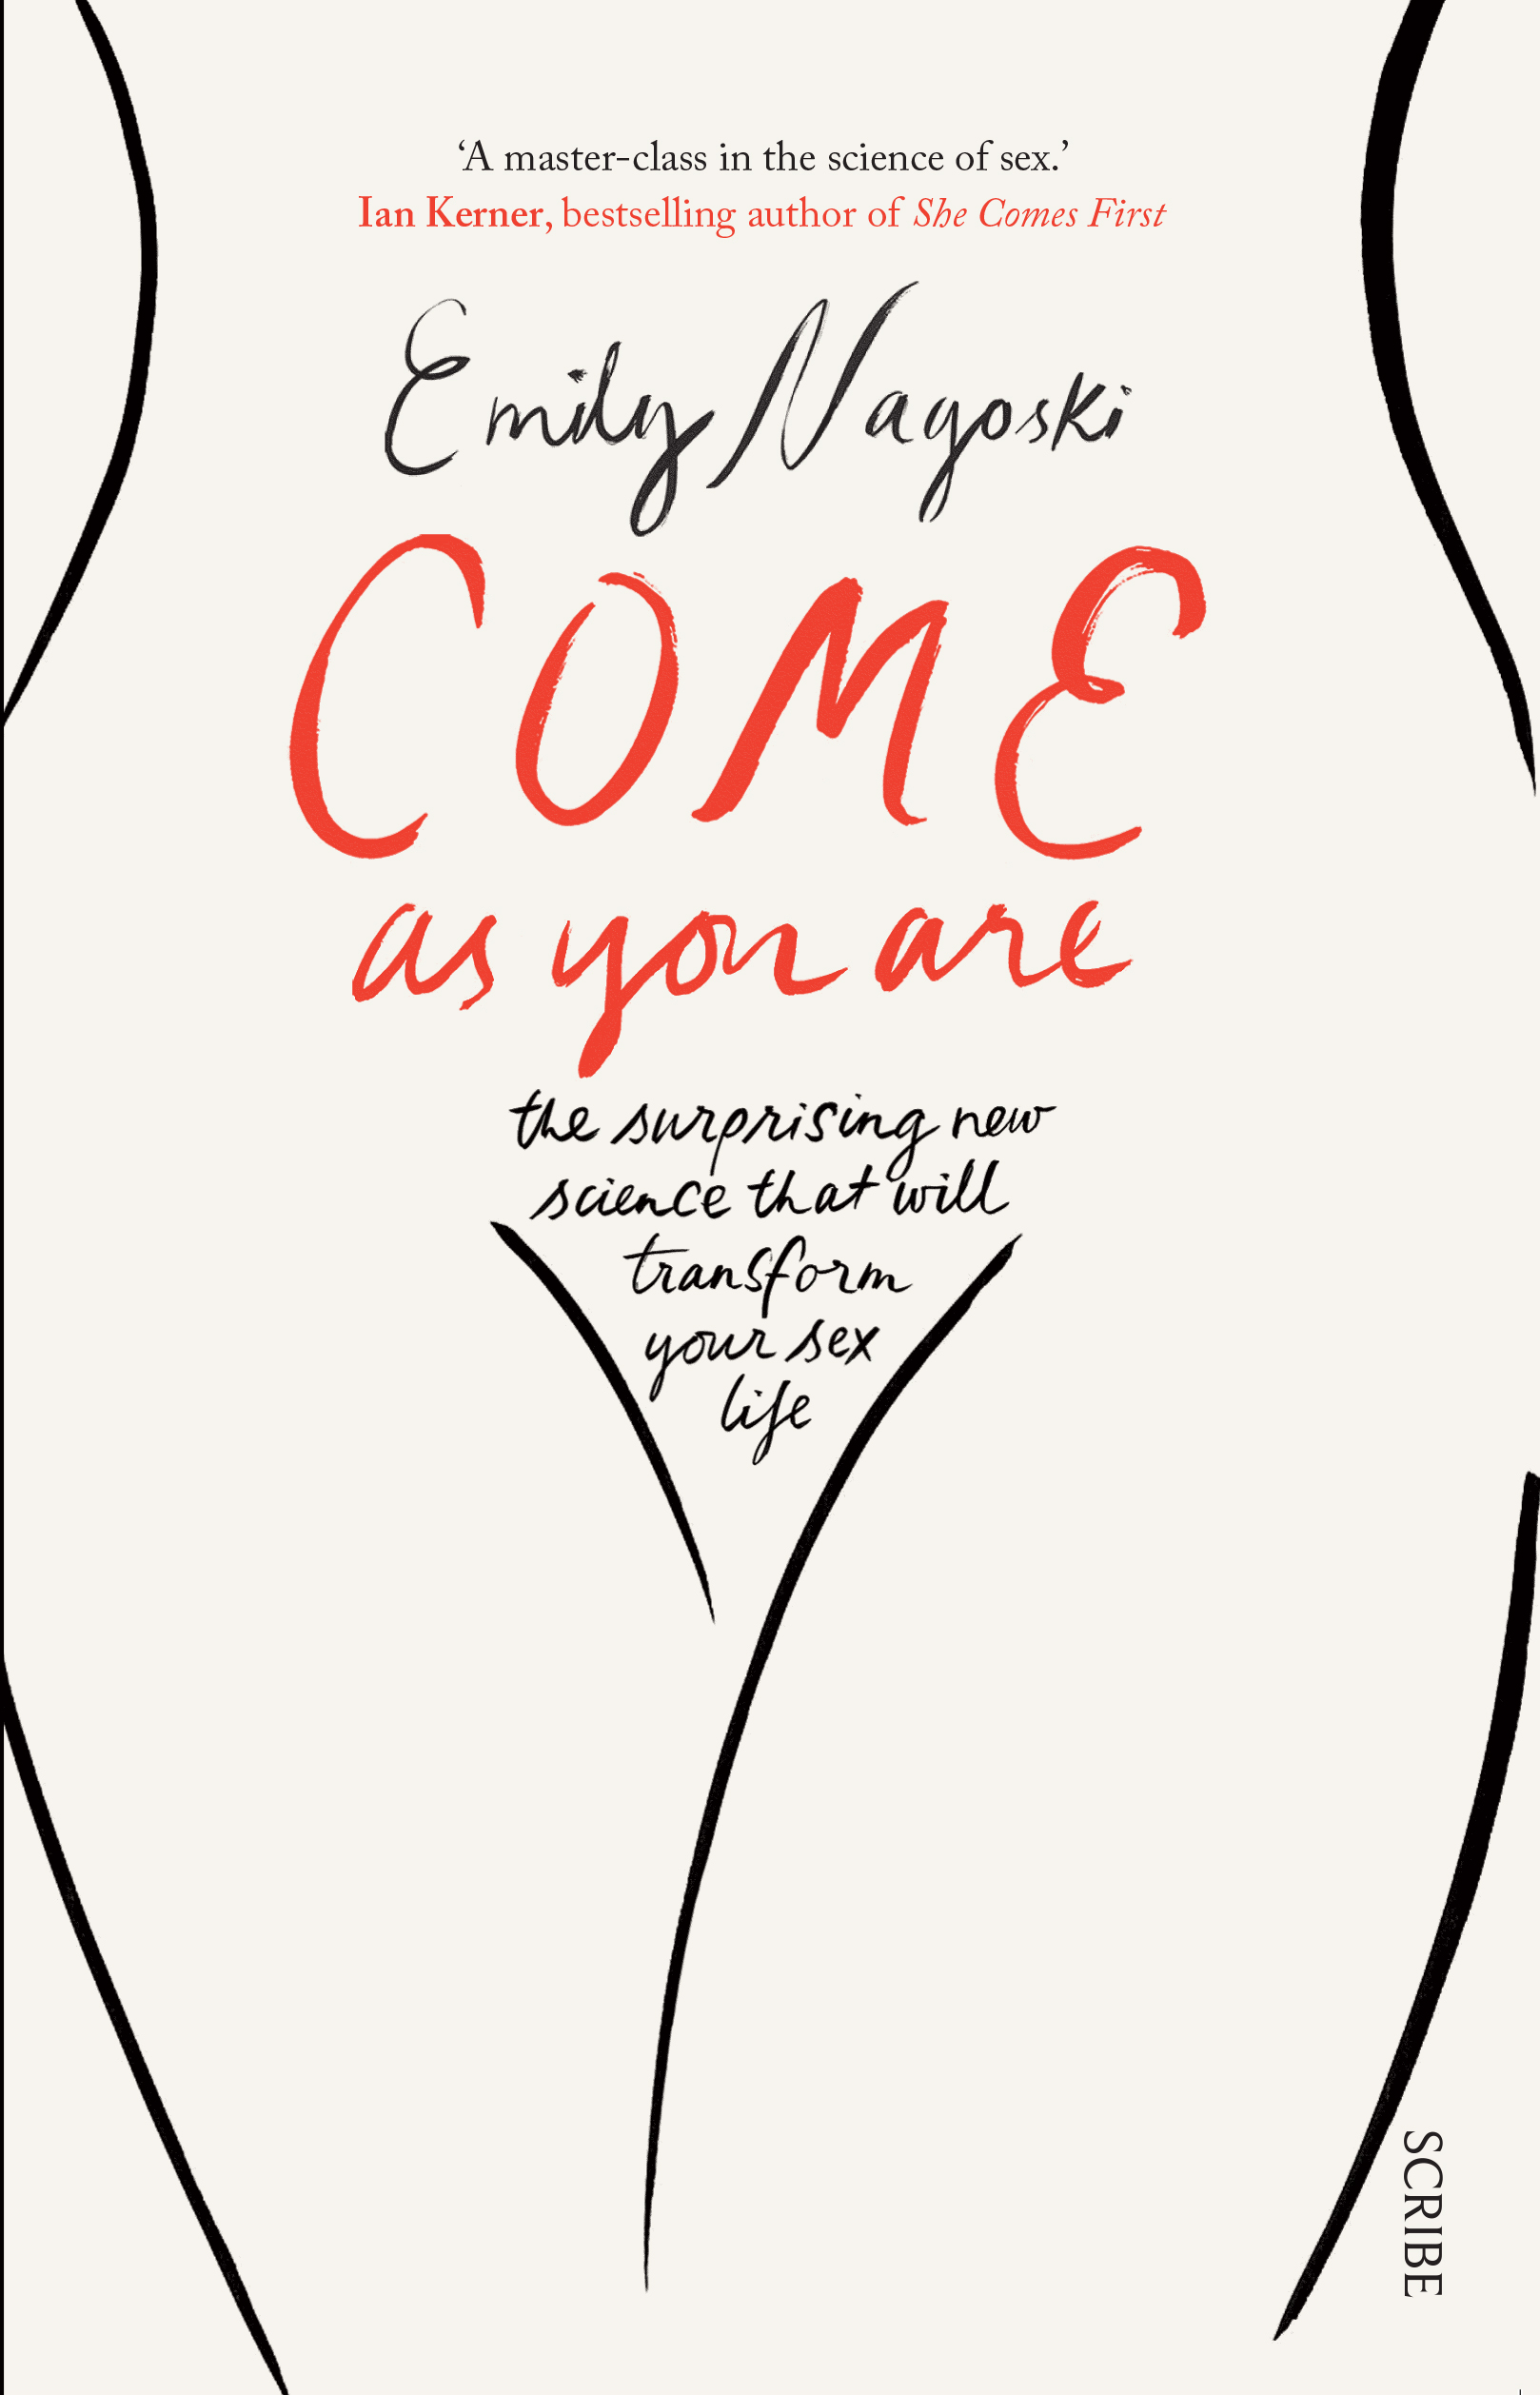 Come as You are: the Surprising New Science That Will Transform Your Sexlife